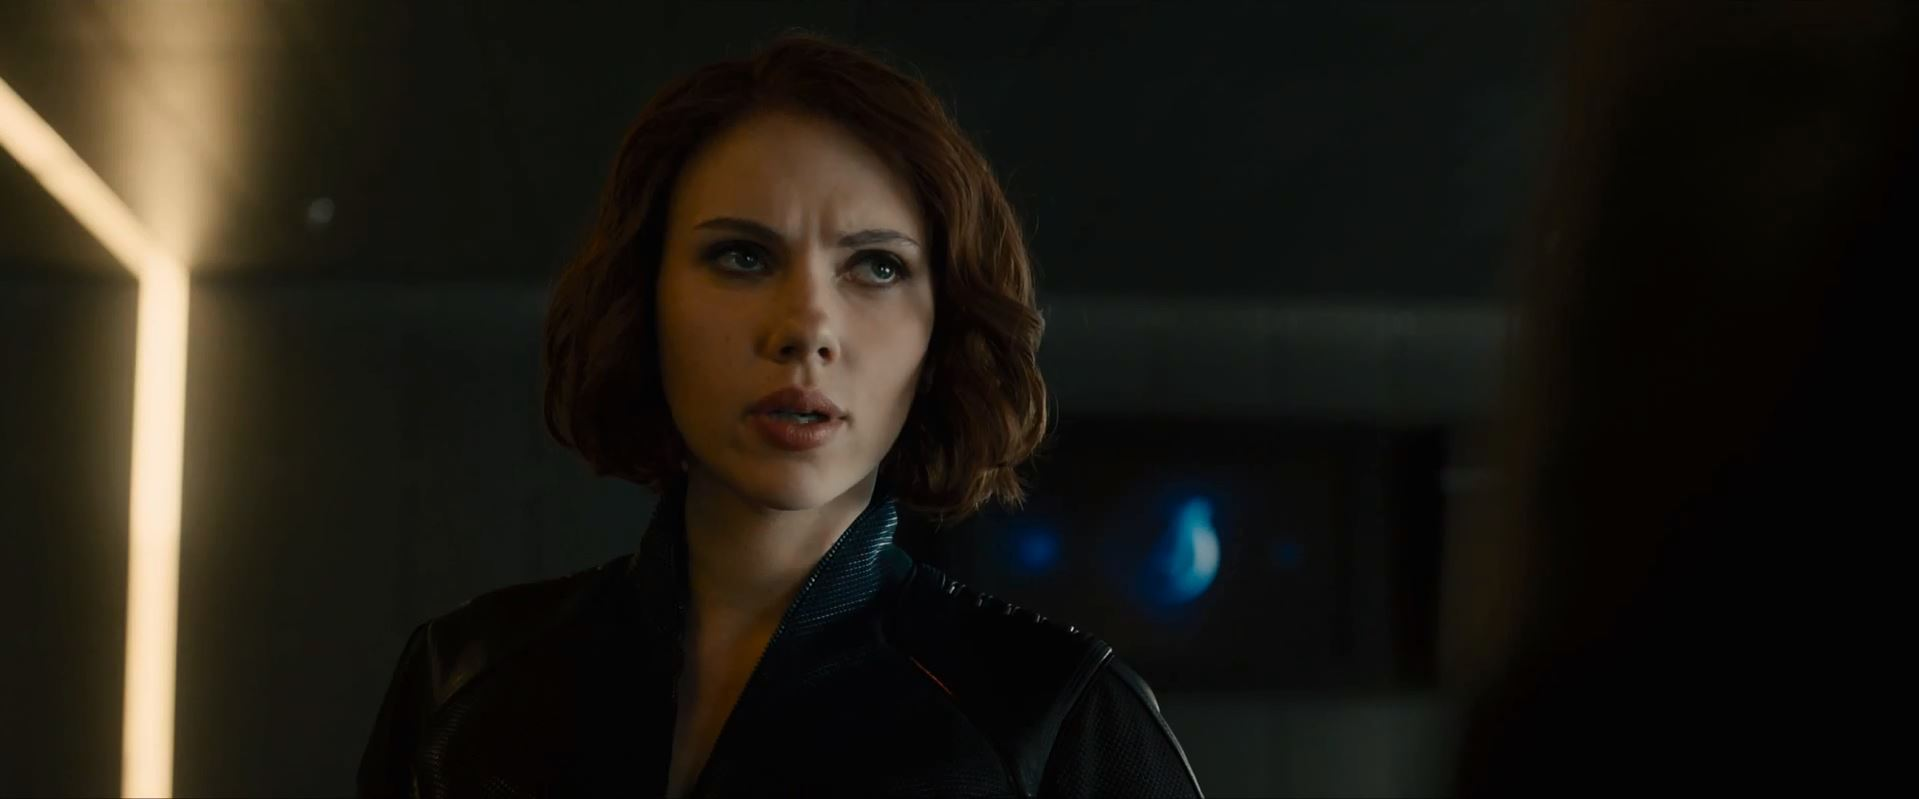 Avengers Age Of Ultron Trailer Released - Scarlett Johansson as Natasha Romanoff Black Widow